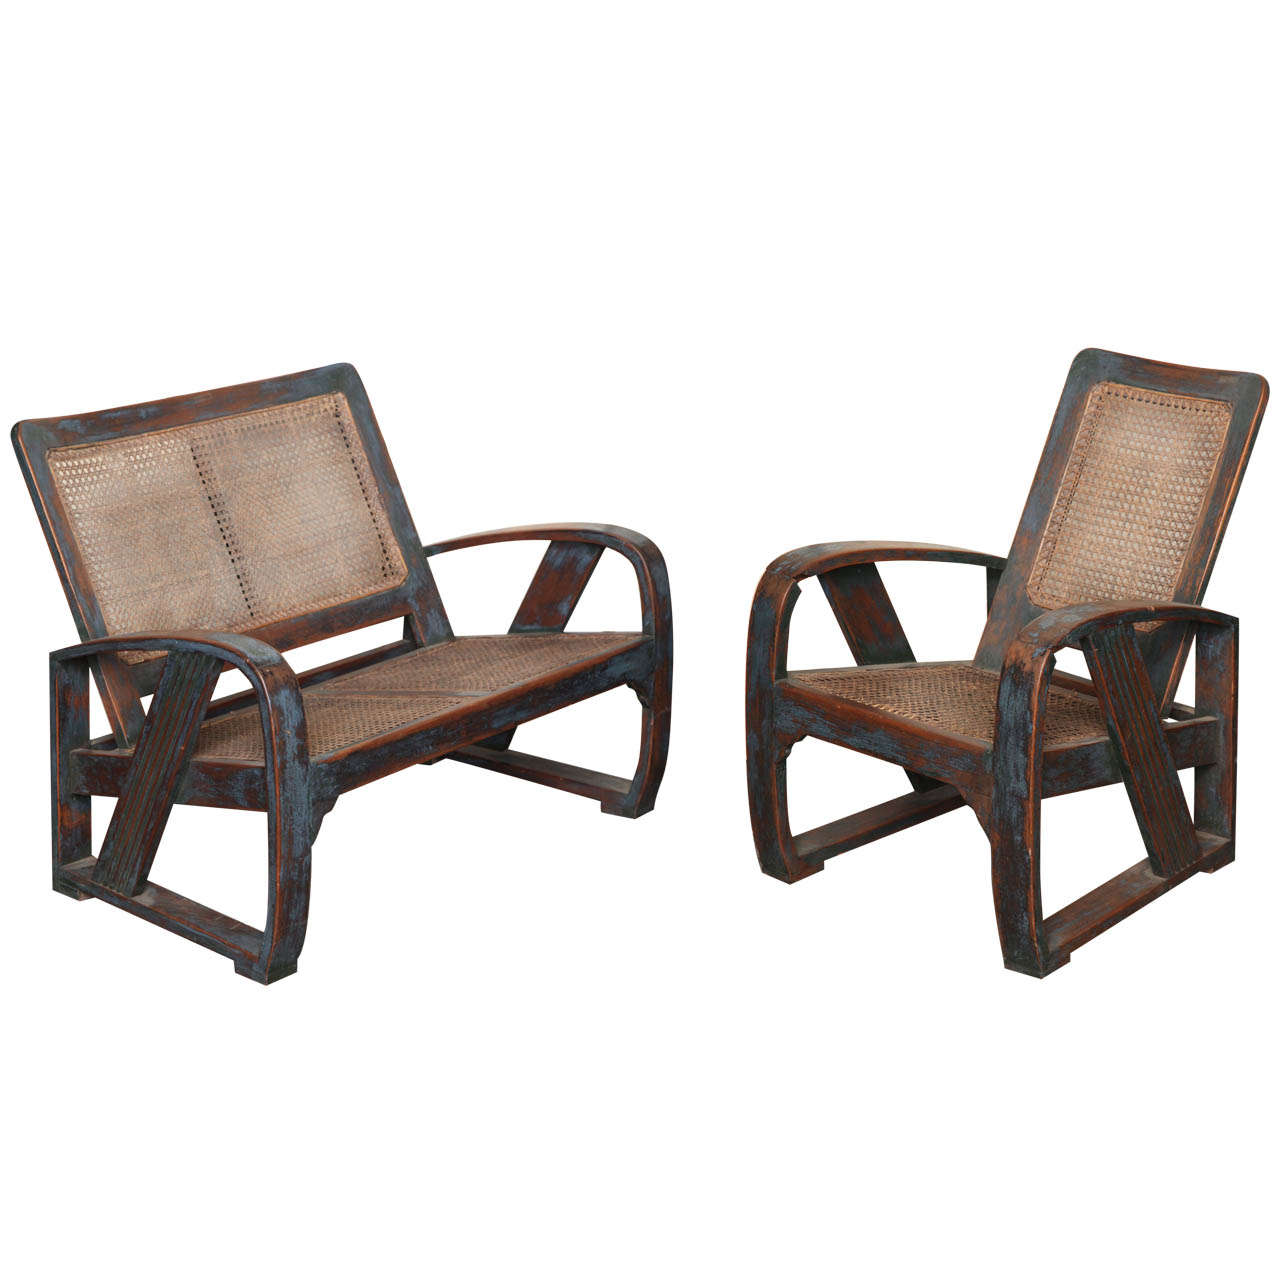 This pair of large burmese arm chairs is no longer available - Burmese Art Deco Teak Settee And Chair 1